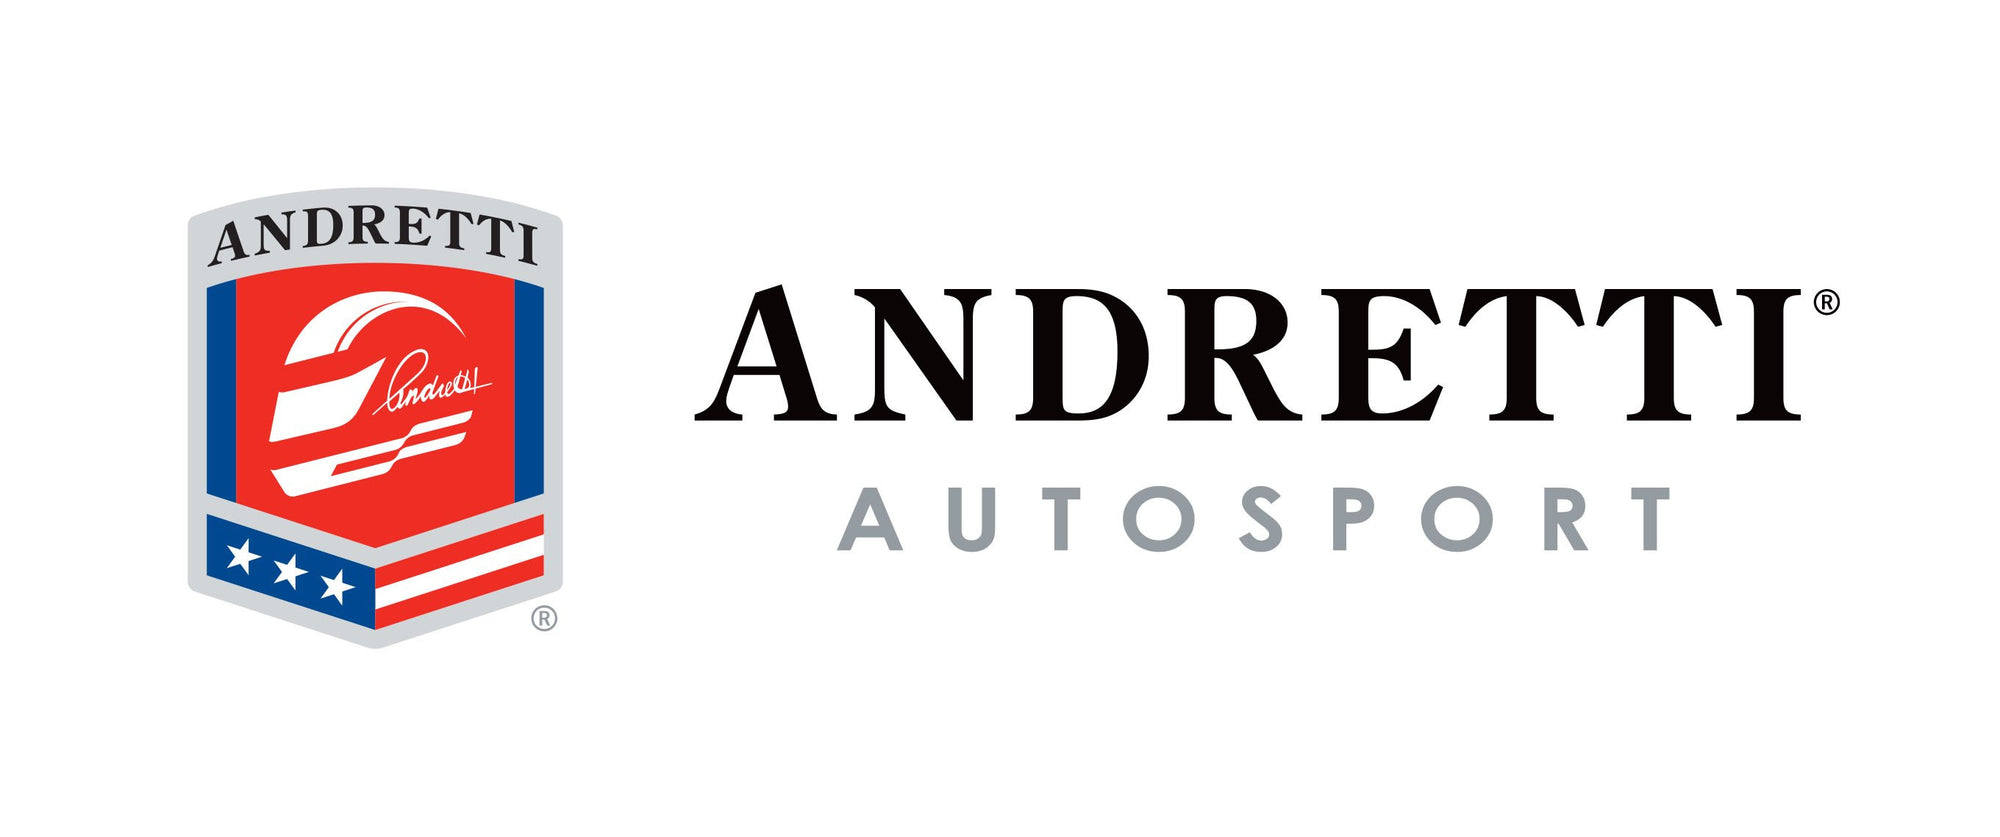 Cutting Edge Automotive Solutions Partners With Andretti